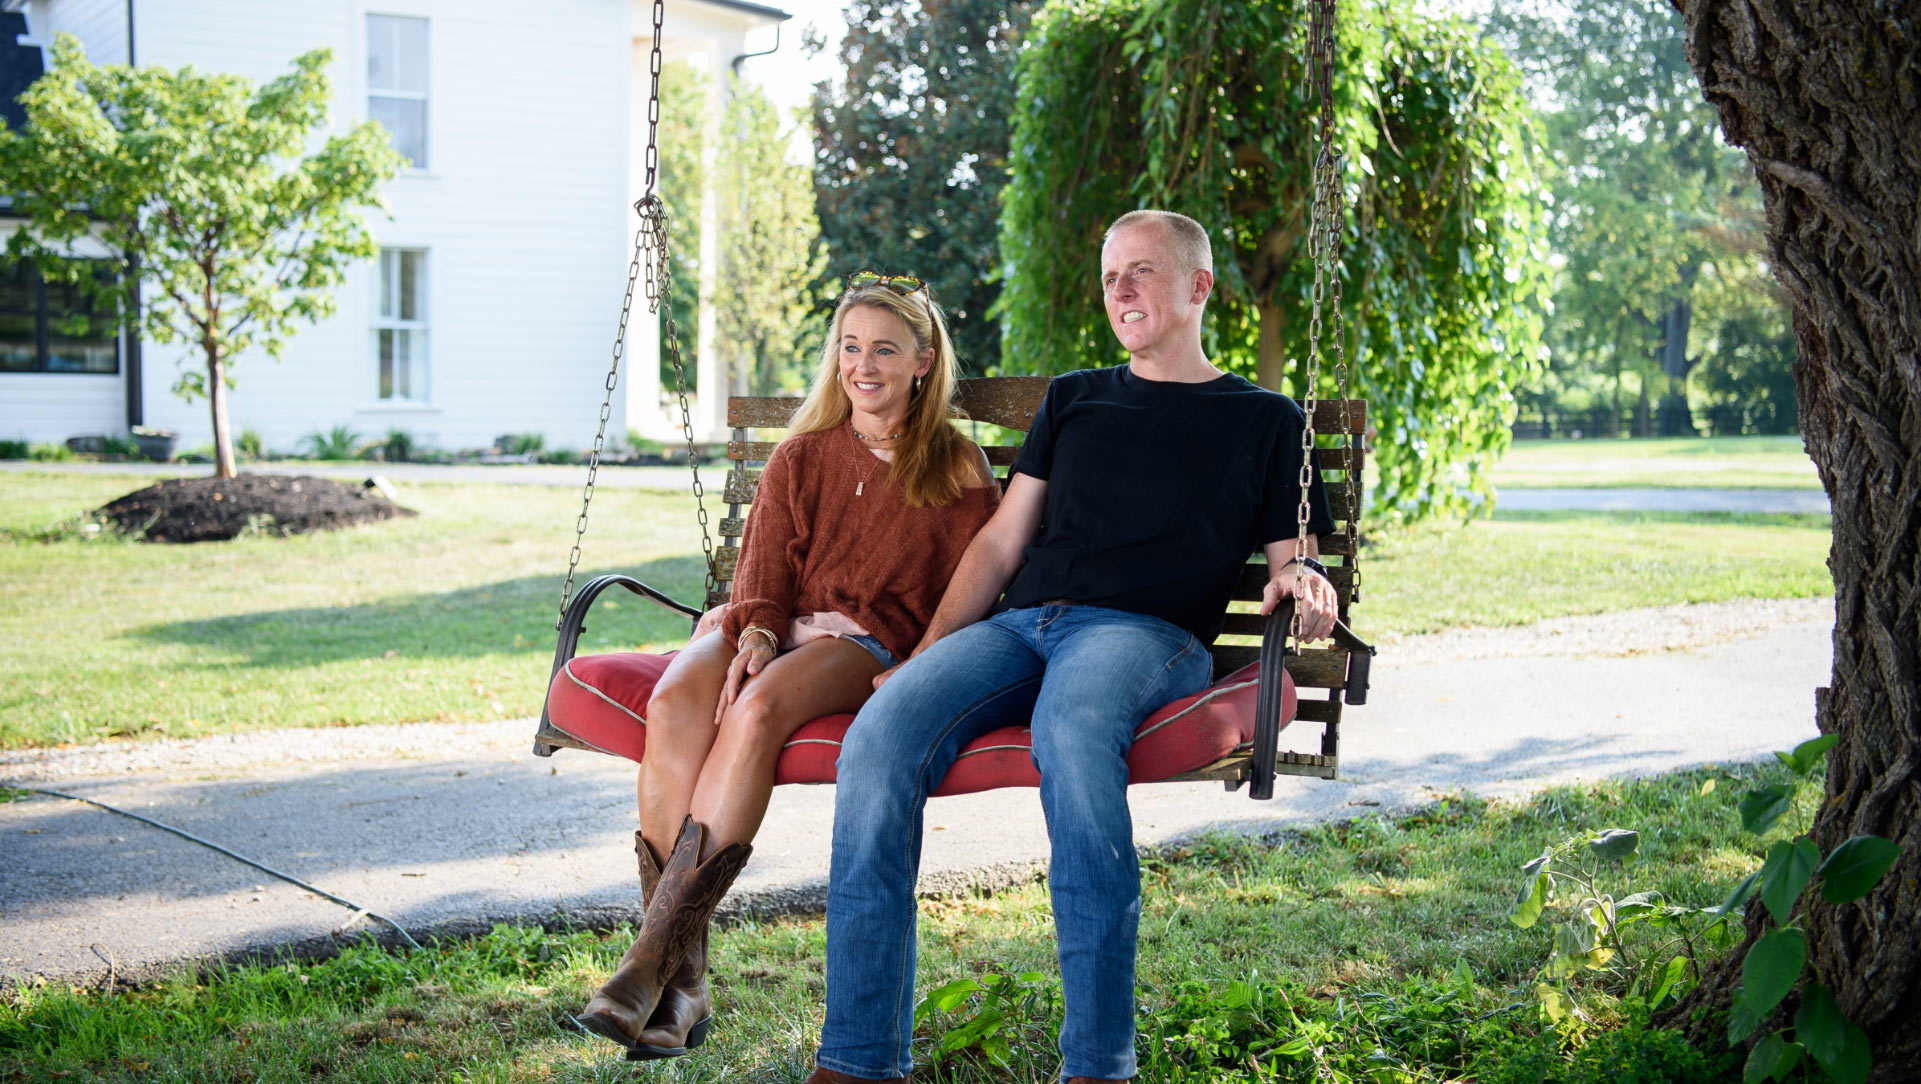 Dr. Day and his wife, a slim woman with long blonde hair wearing jean shorts, a long-sleeved orange blouse, and cowgirl boots, sit on a wooden bench swing together.